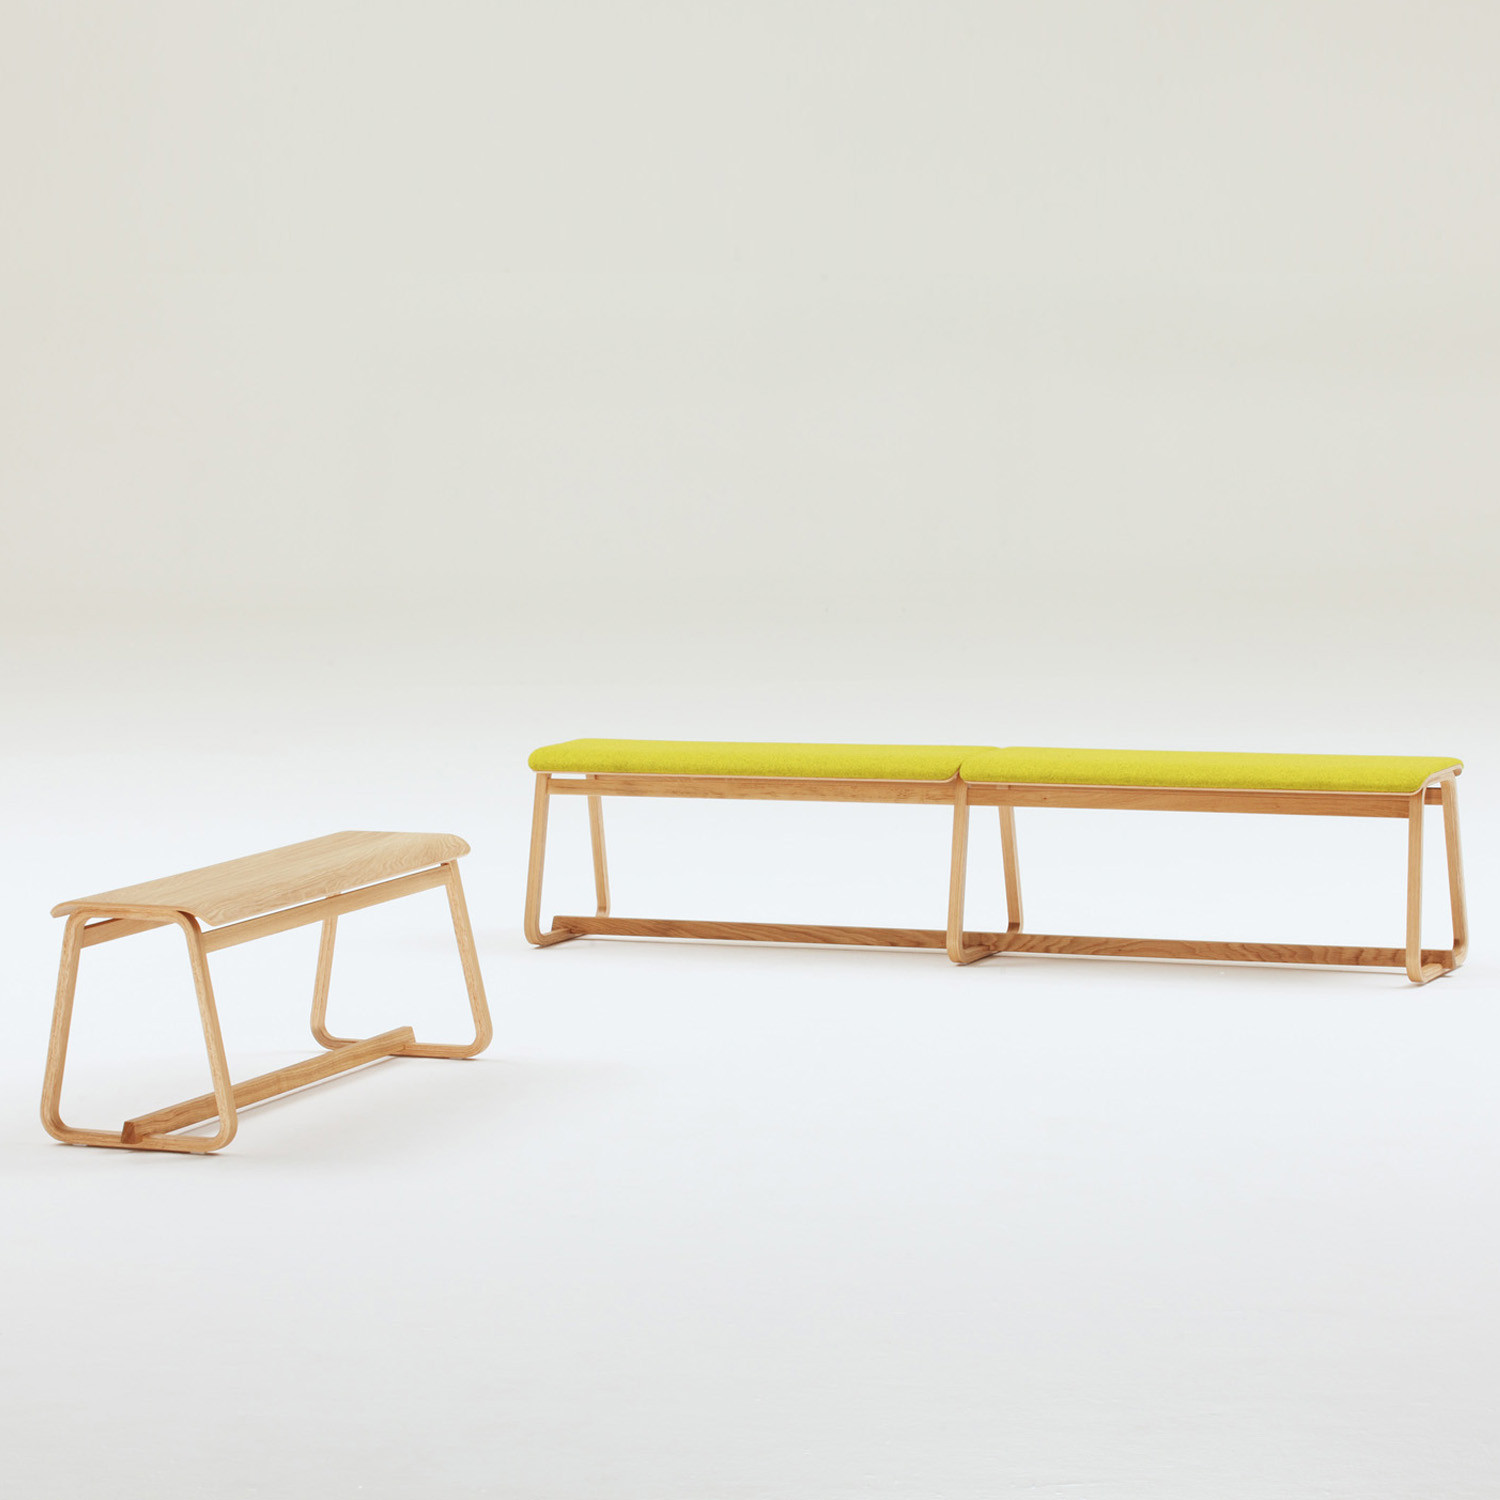 Theo Bench is available with or without upholstery